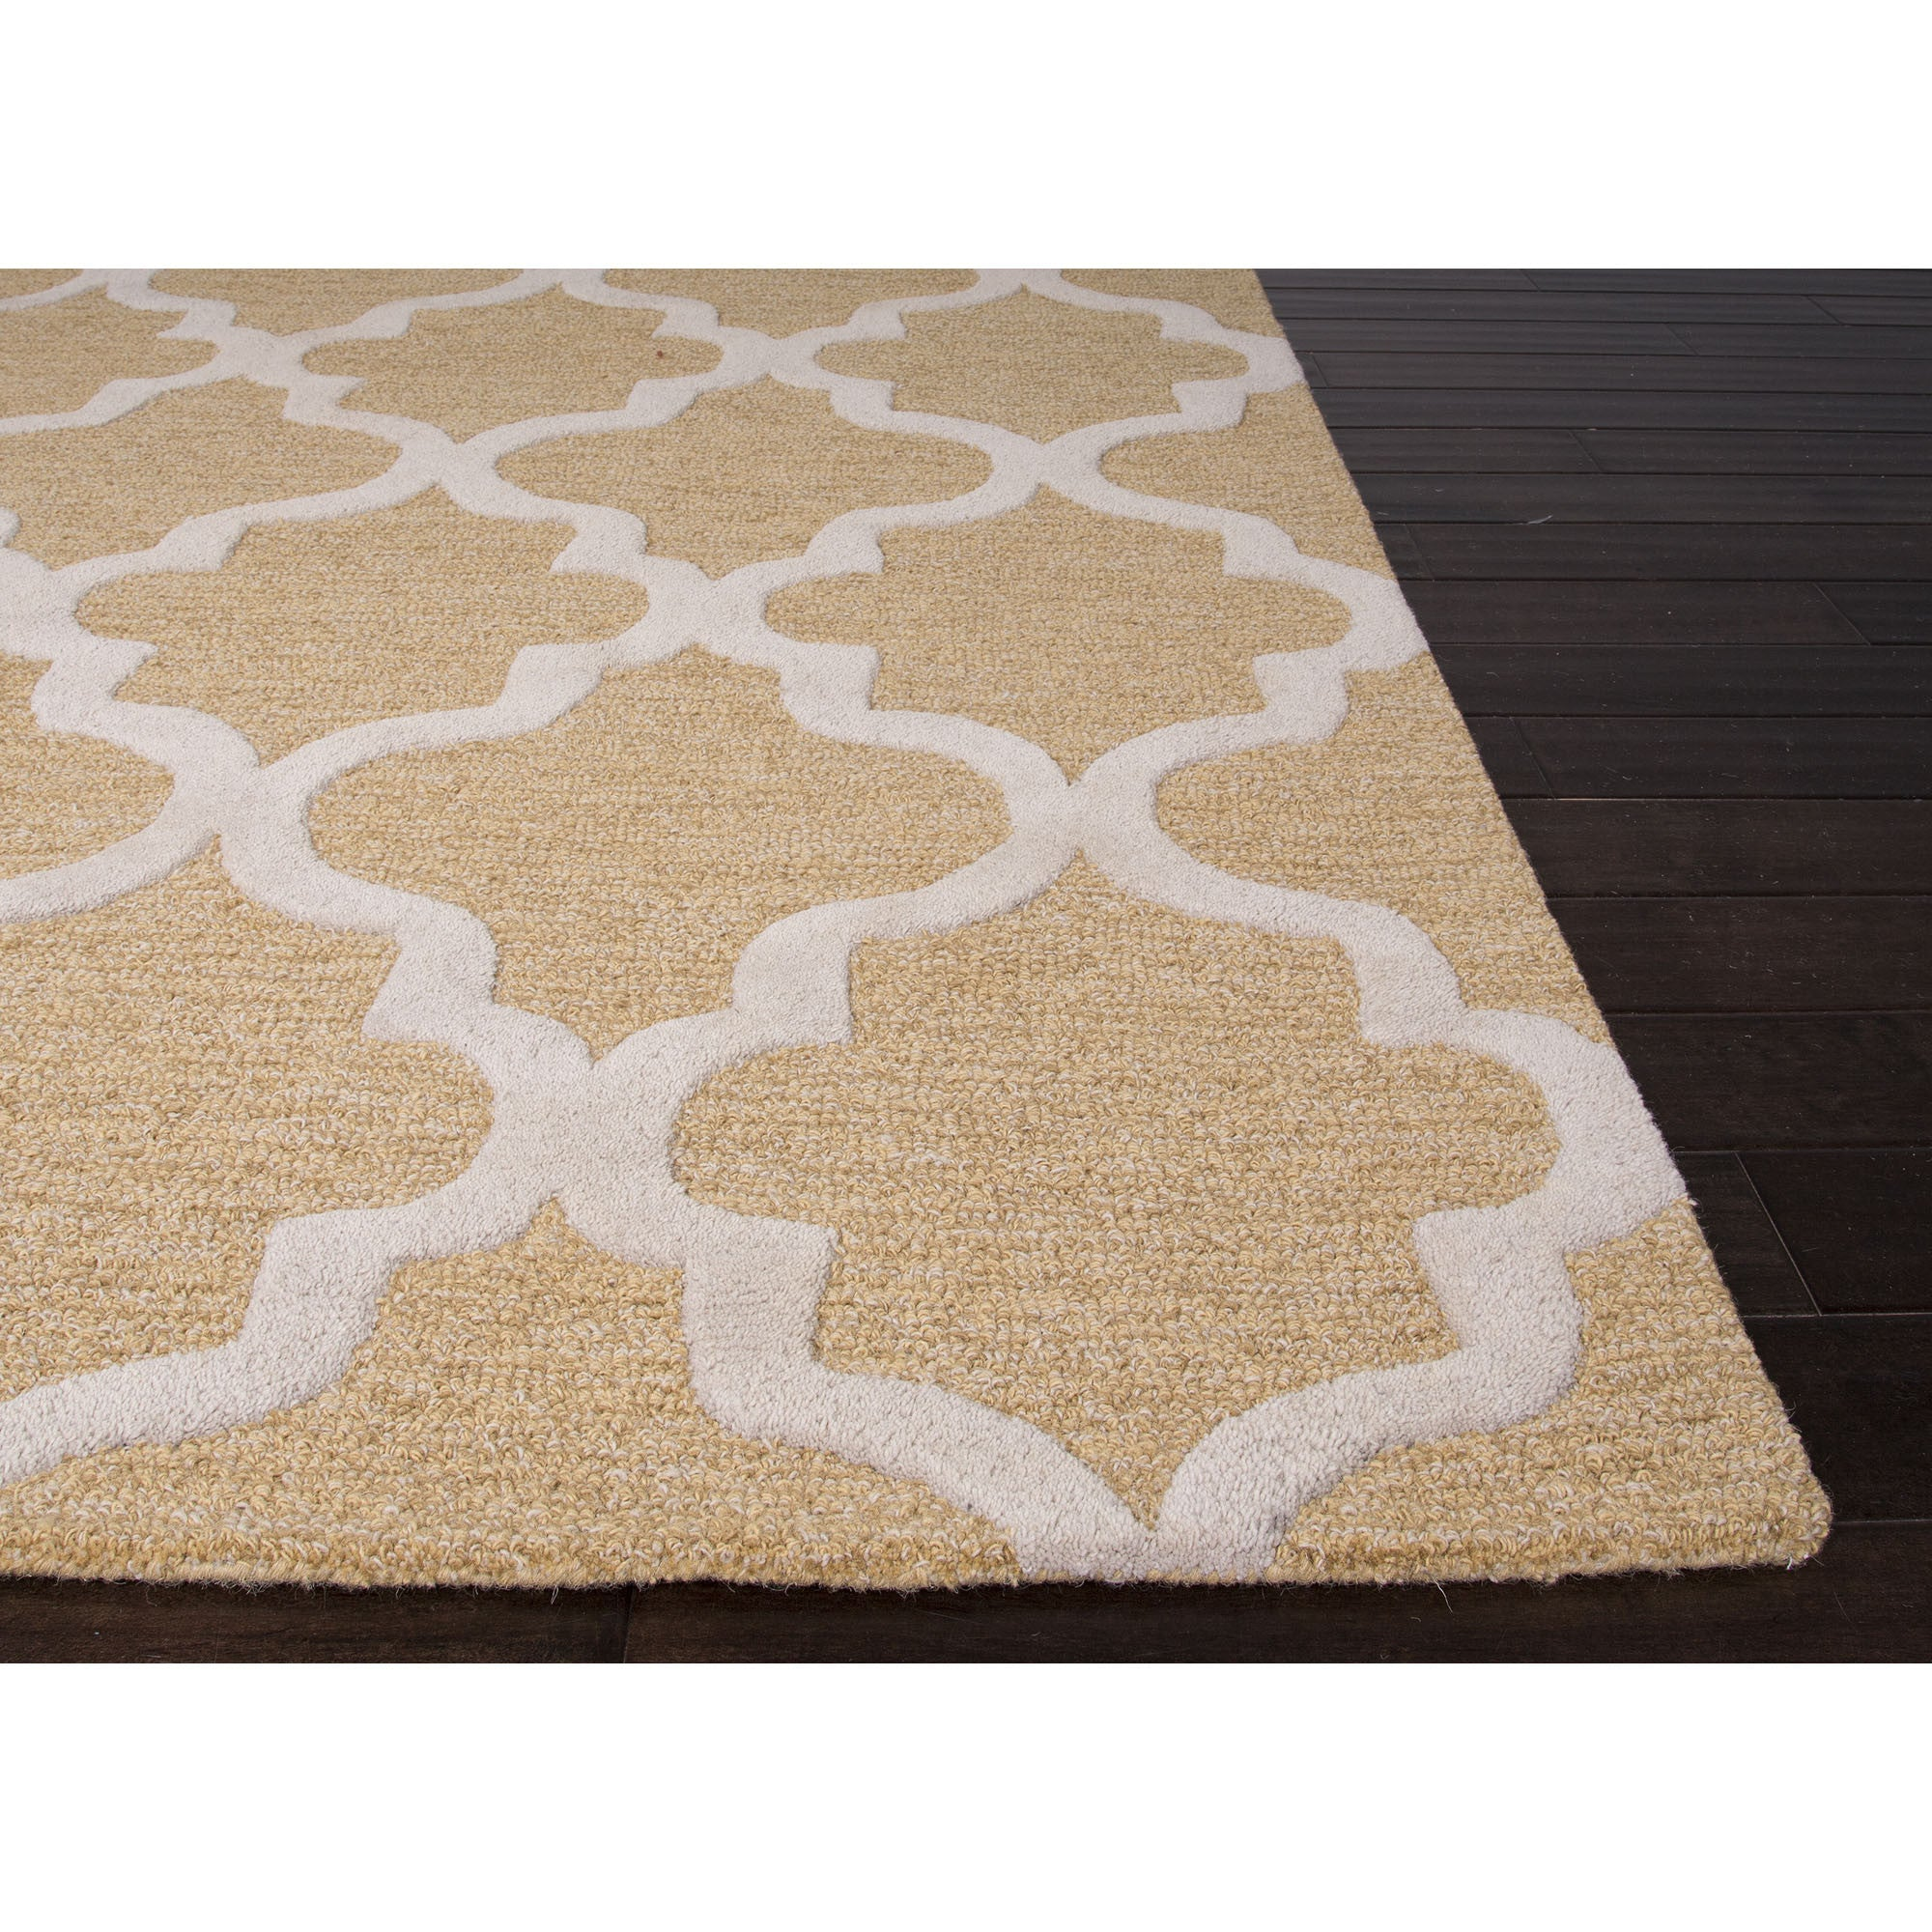 Jaipur rugs modern geometric pattern taupe ivory wool area for Modern wool area rugs